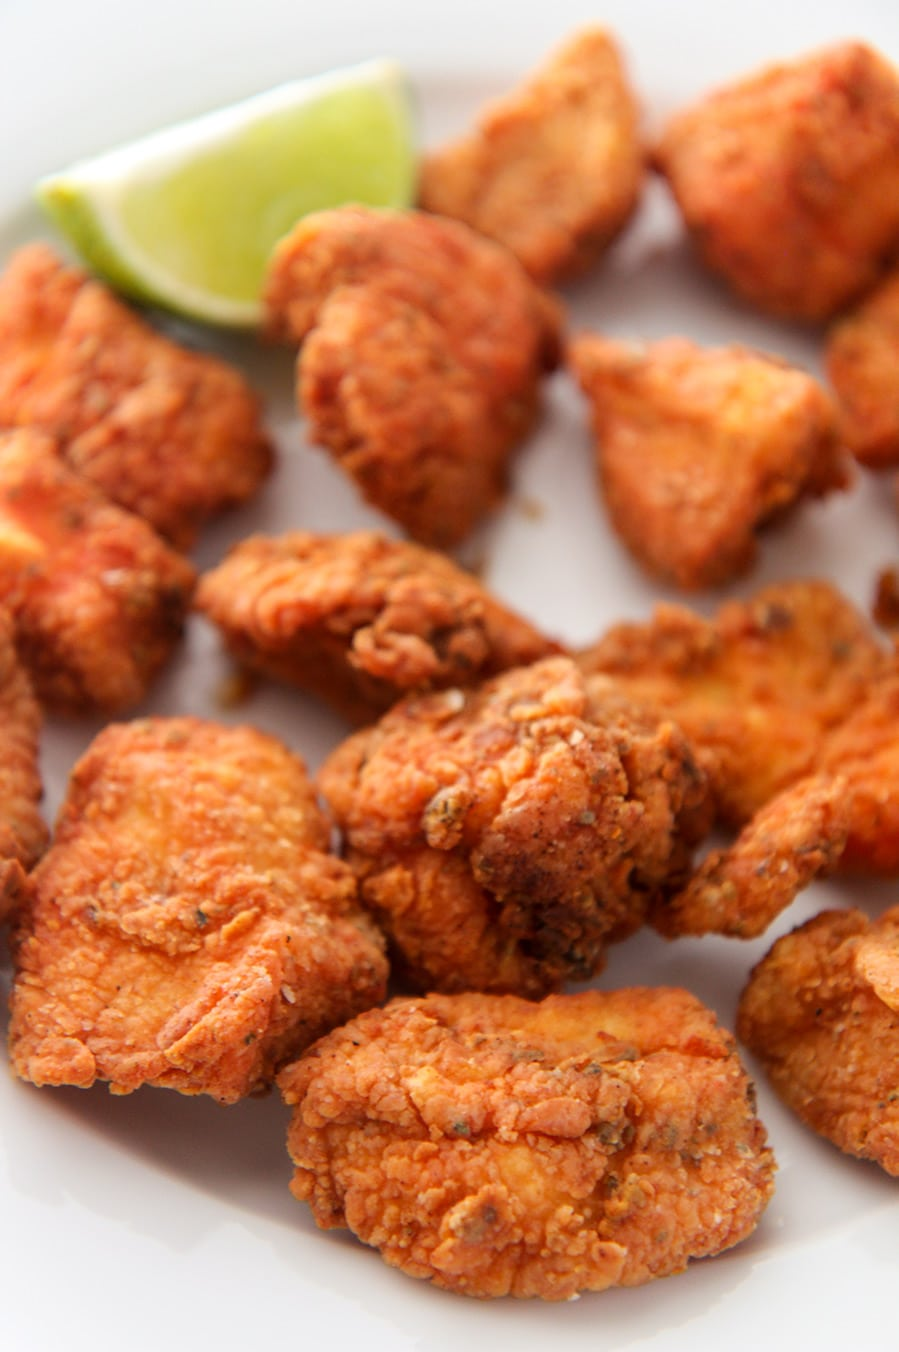 crispy fried chicken bites with a lime wedge up close.